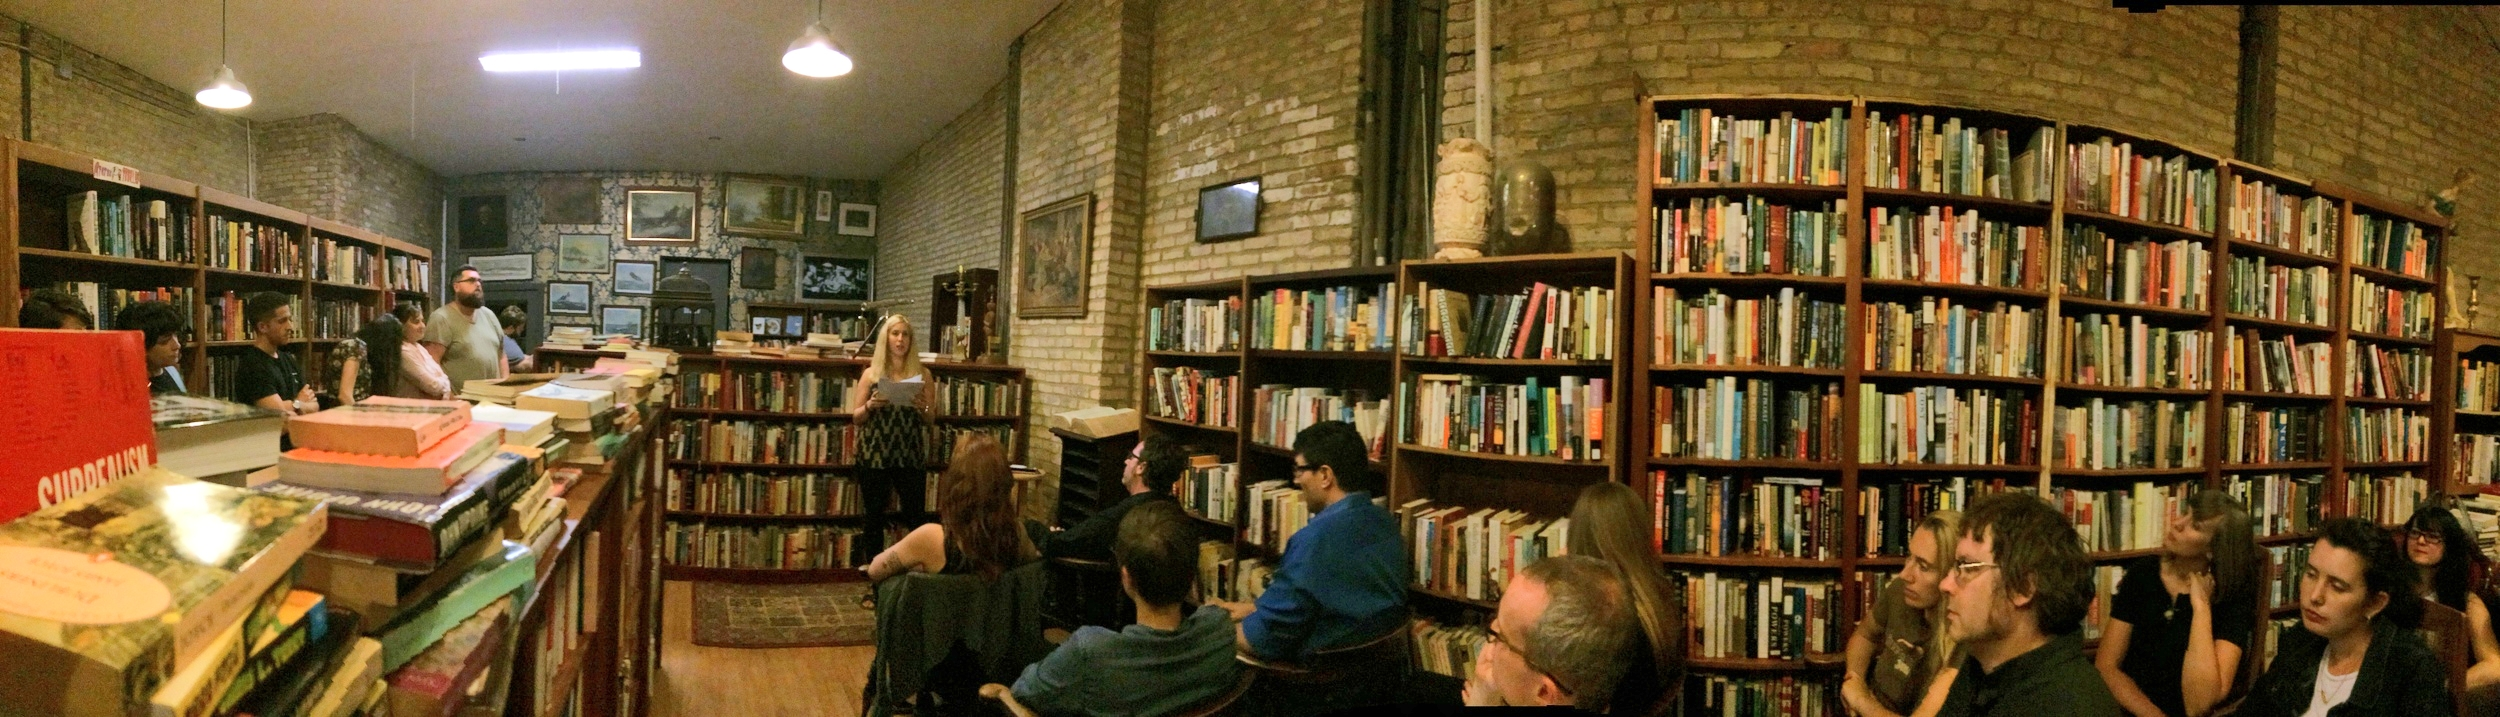 August 2015 - Unchartered Books, Chicago, IL